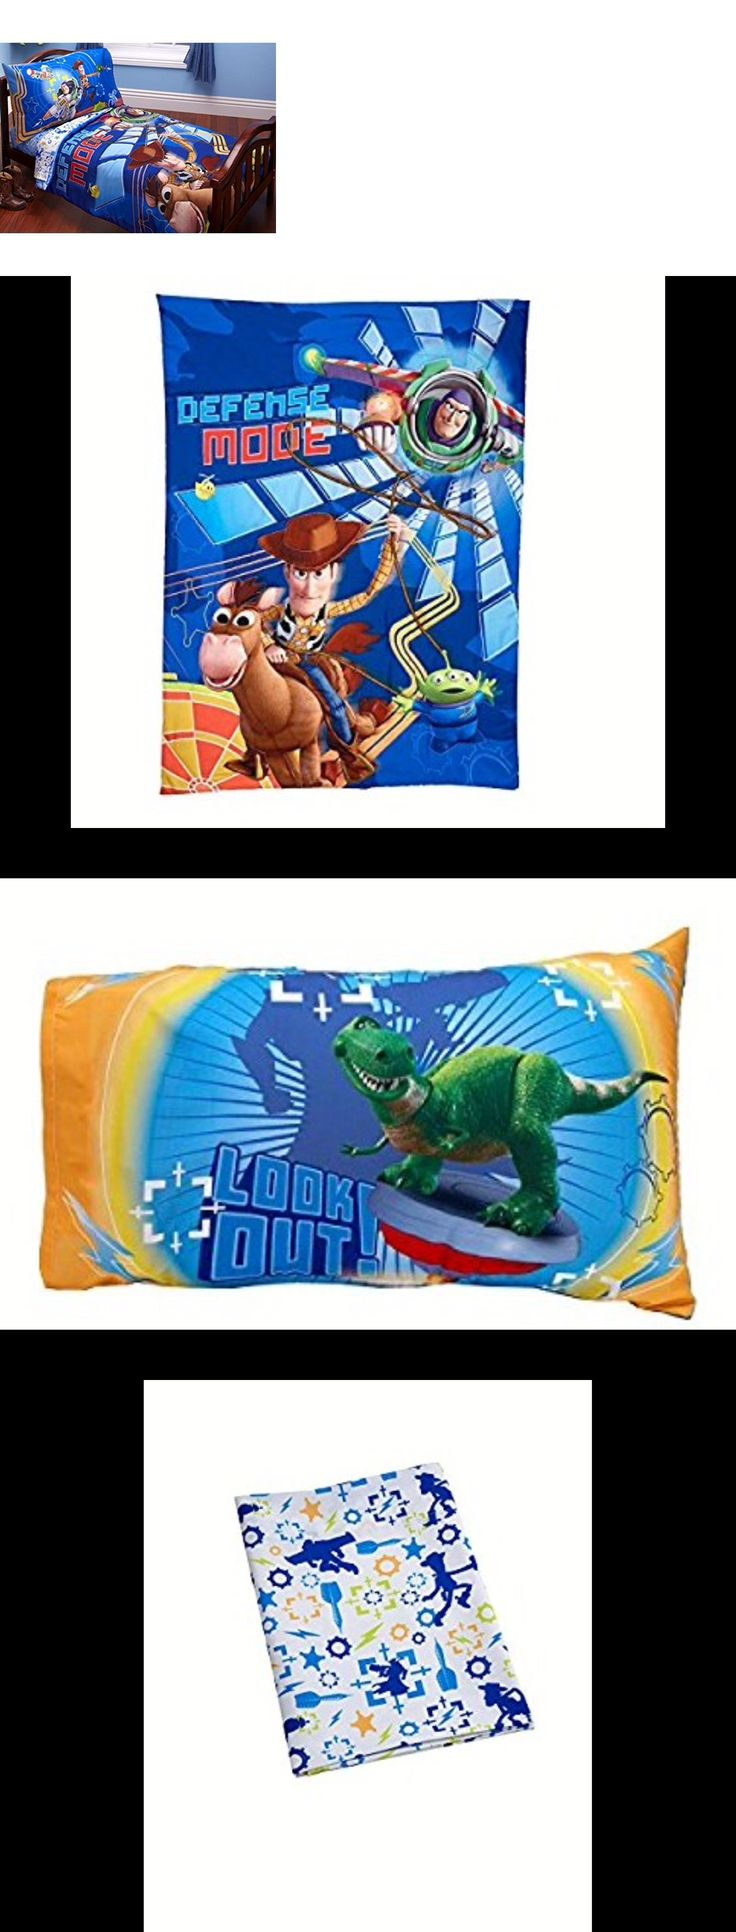 Jessie from toy story bedding - Kids At Home Toy Story 4 Piece Microfiber Toddler Bed Set Bedspread Sheet Pillowcase New